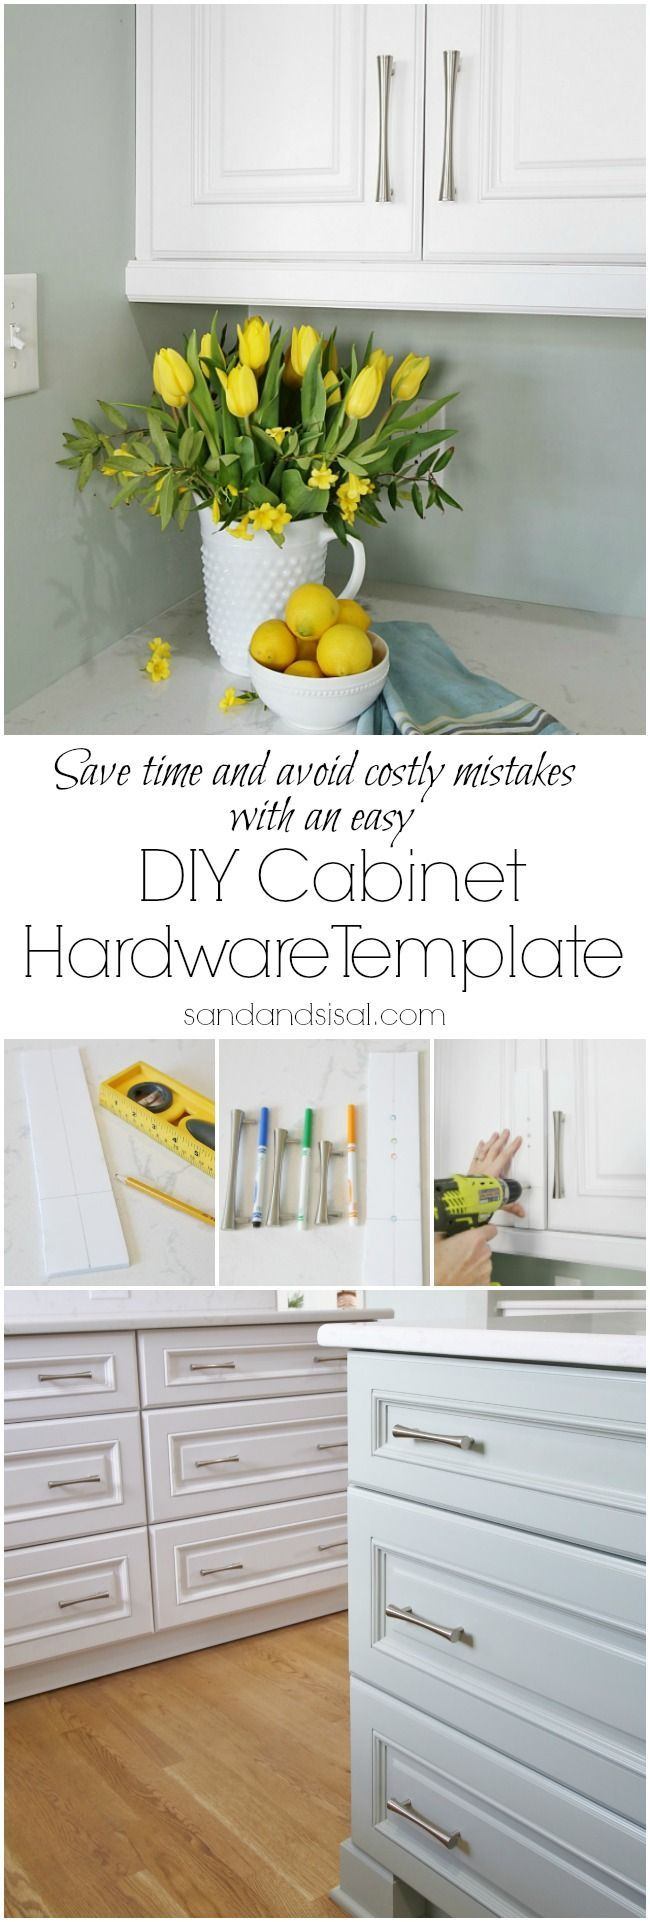 DIY Cabinet Hardware Template - Hardware Installation Made Easy ...